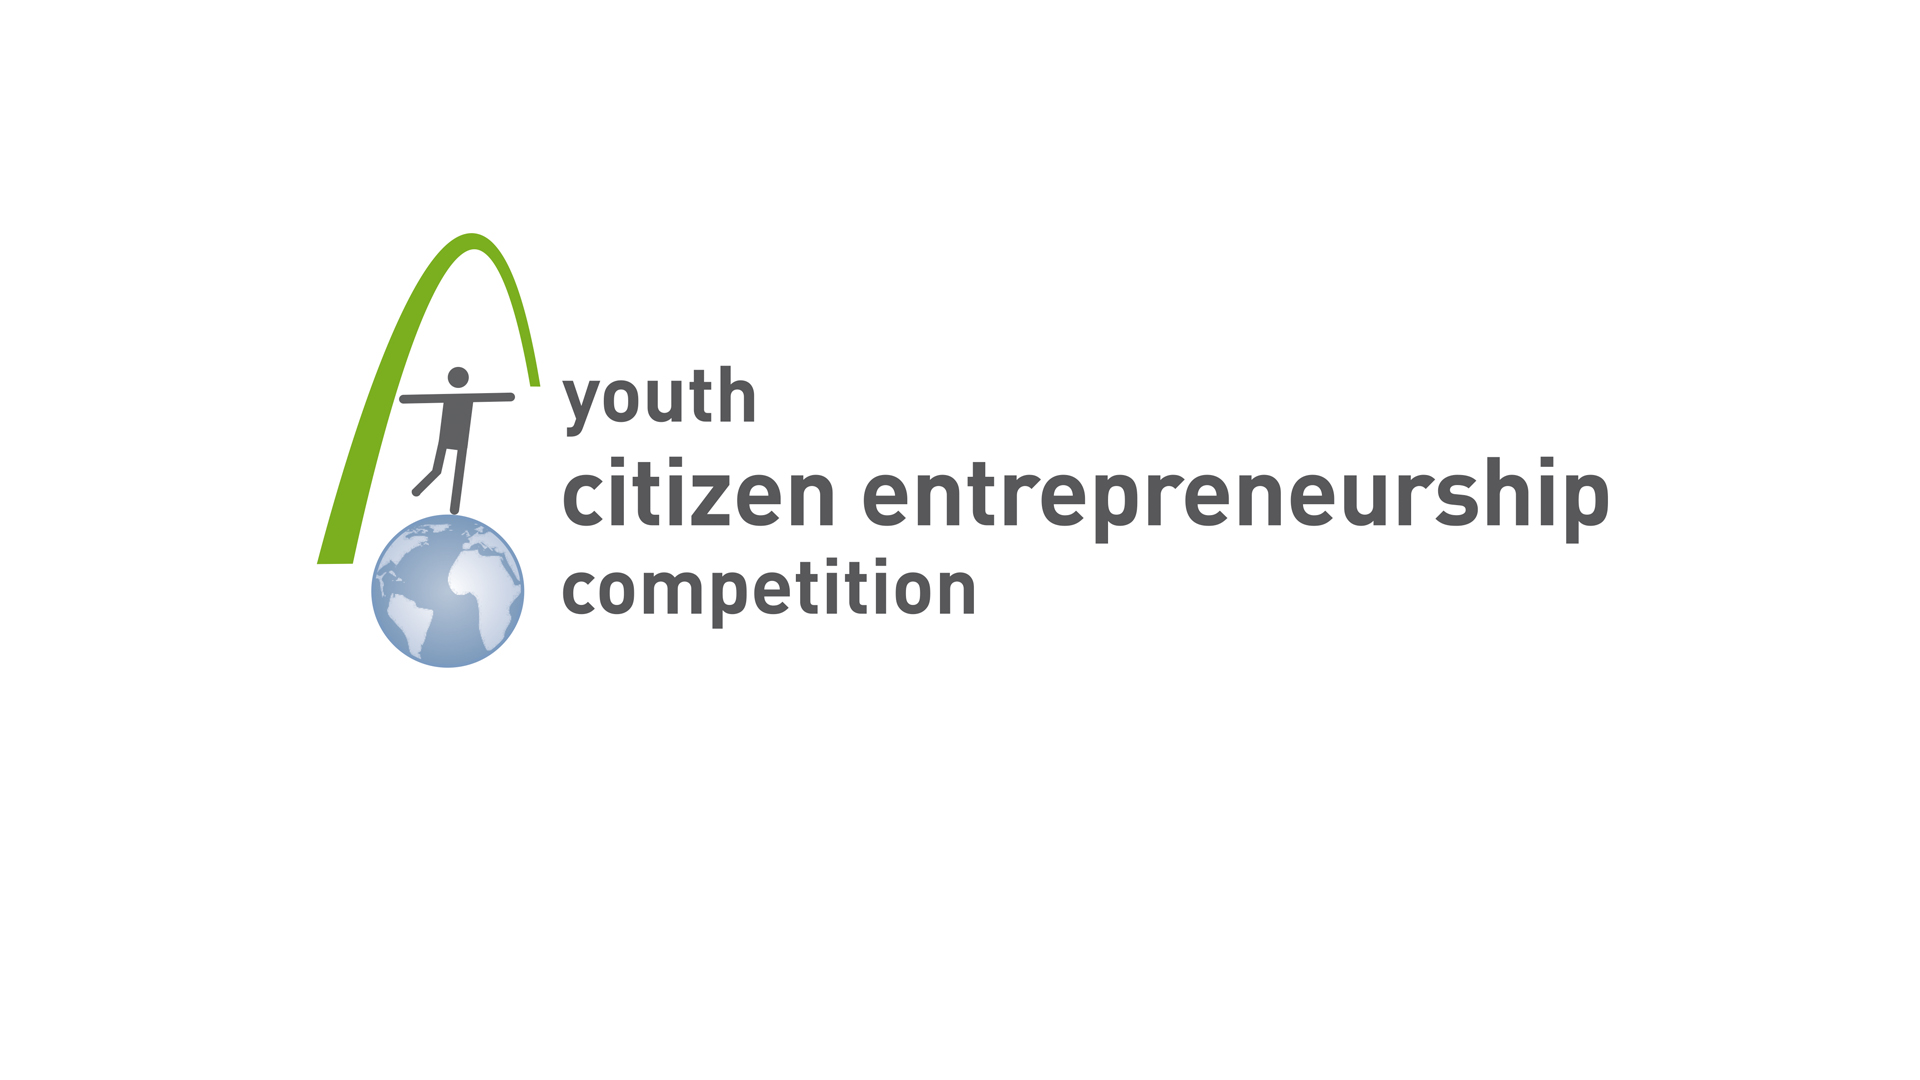 Publiseer Selected As One Of The Best Projects At The 2019 Youth Citizen Entrepreneurship Competition